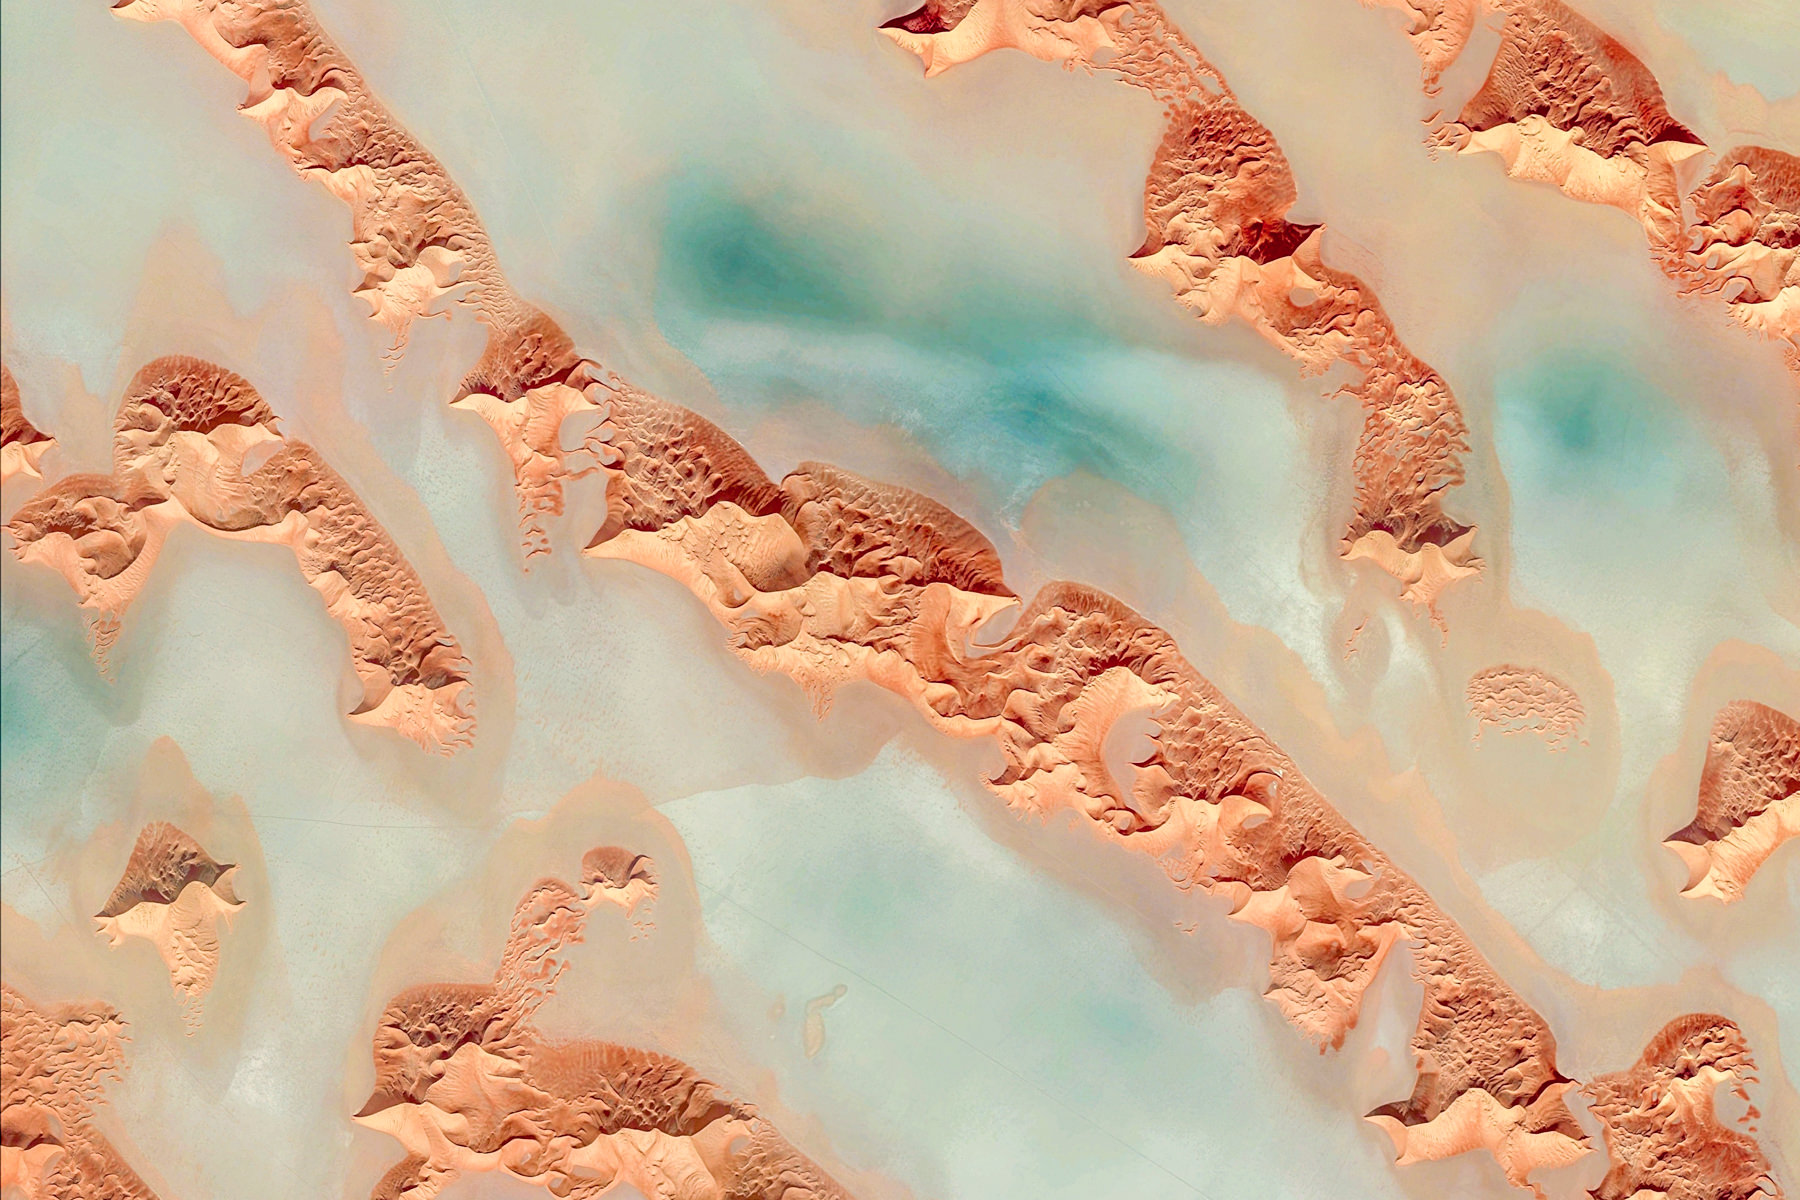 google-earth-Saudi-Arabia-AlAsha-13546